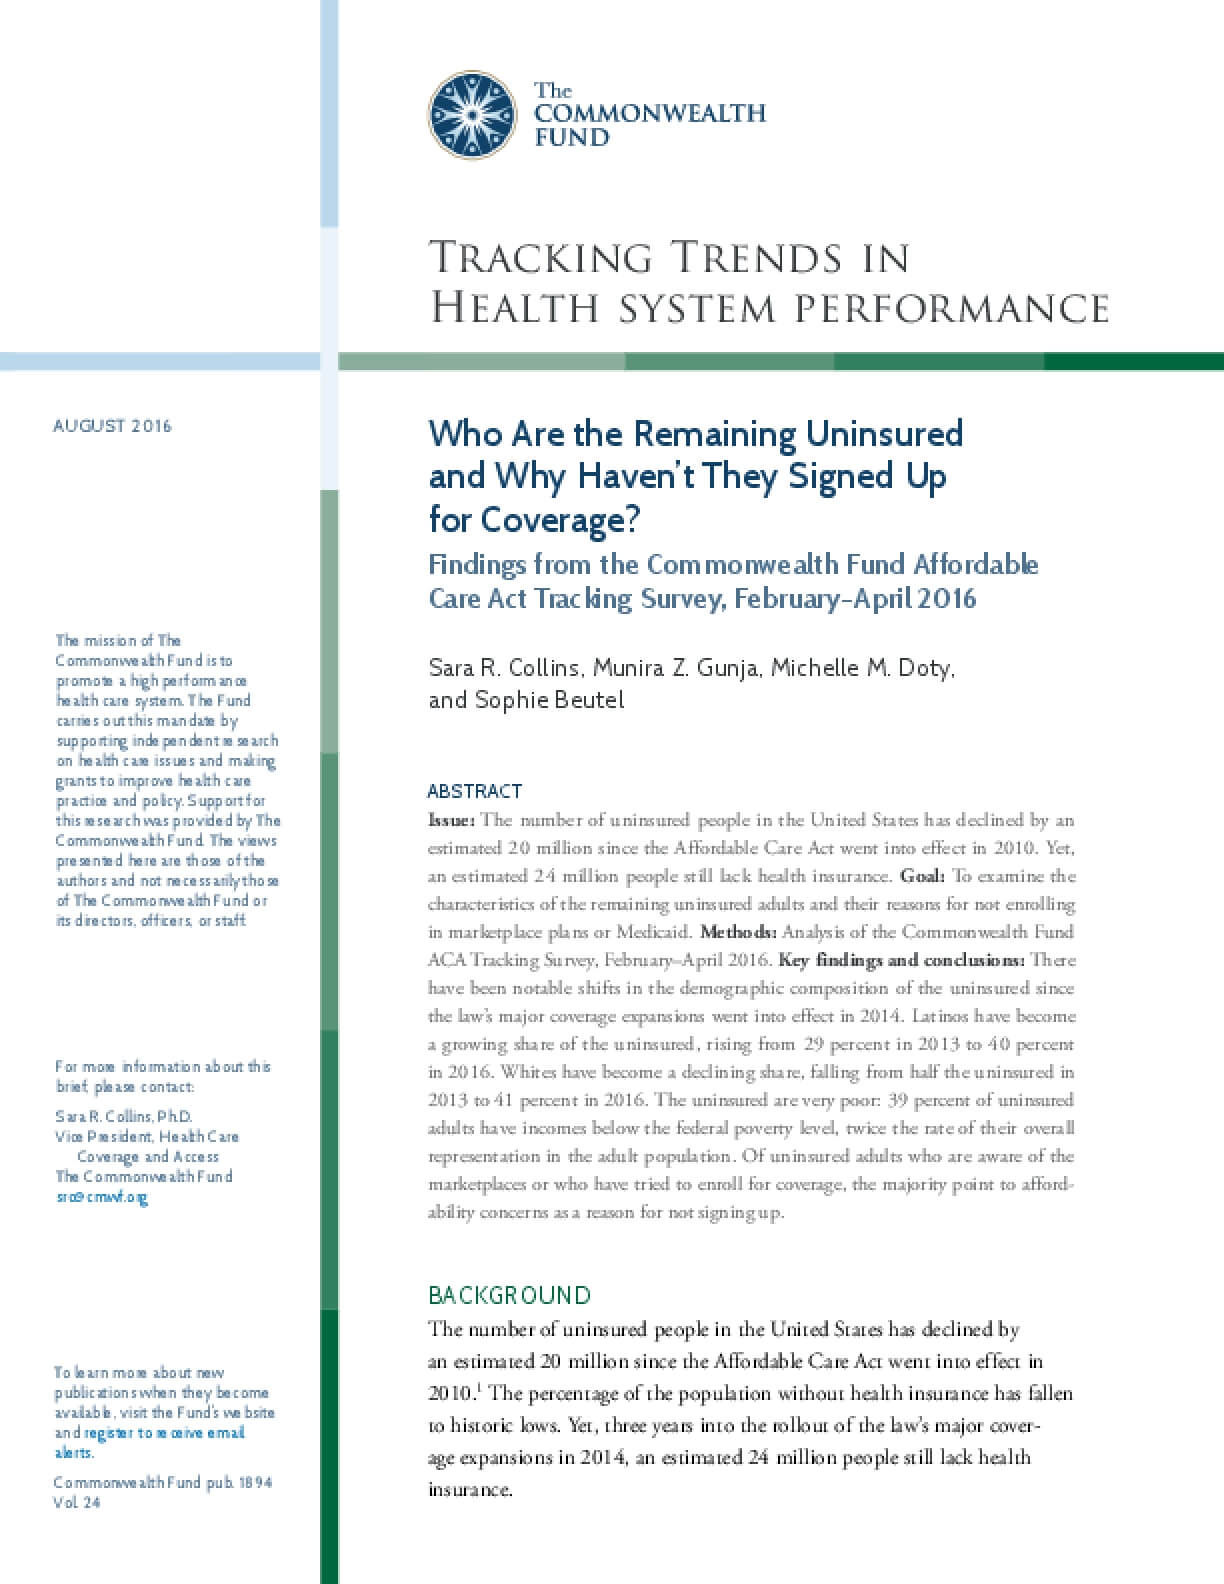 Who Are the Remaining Uninsured and Why Haven't They Signed Up for Coverage? Findings from the Commonwealth Fund Affordable Care Act Tracking Survey, February–April 2016